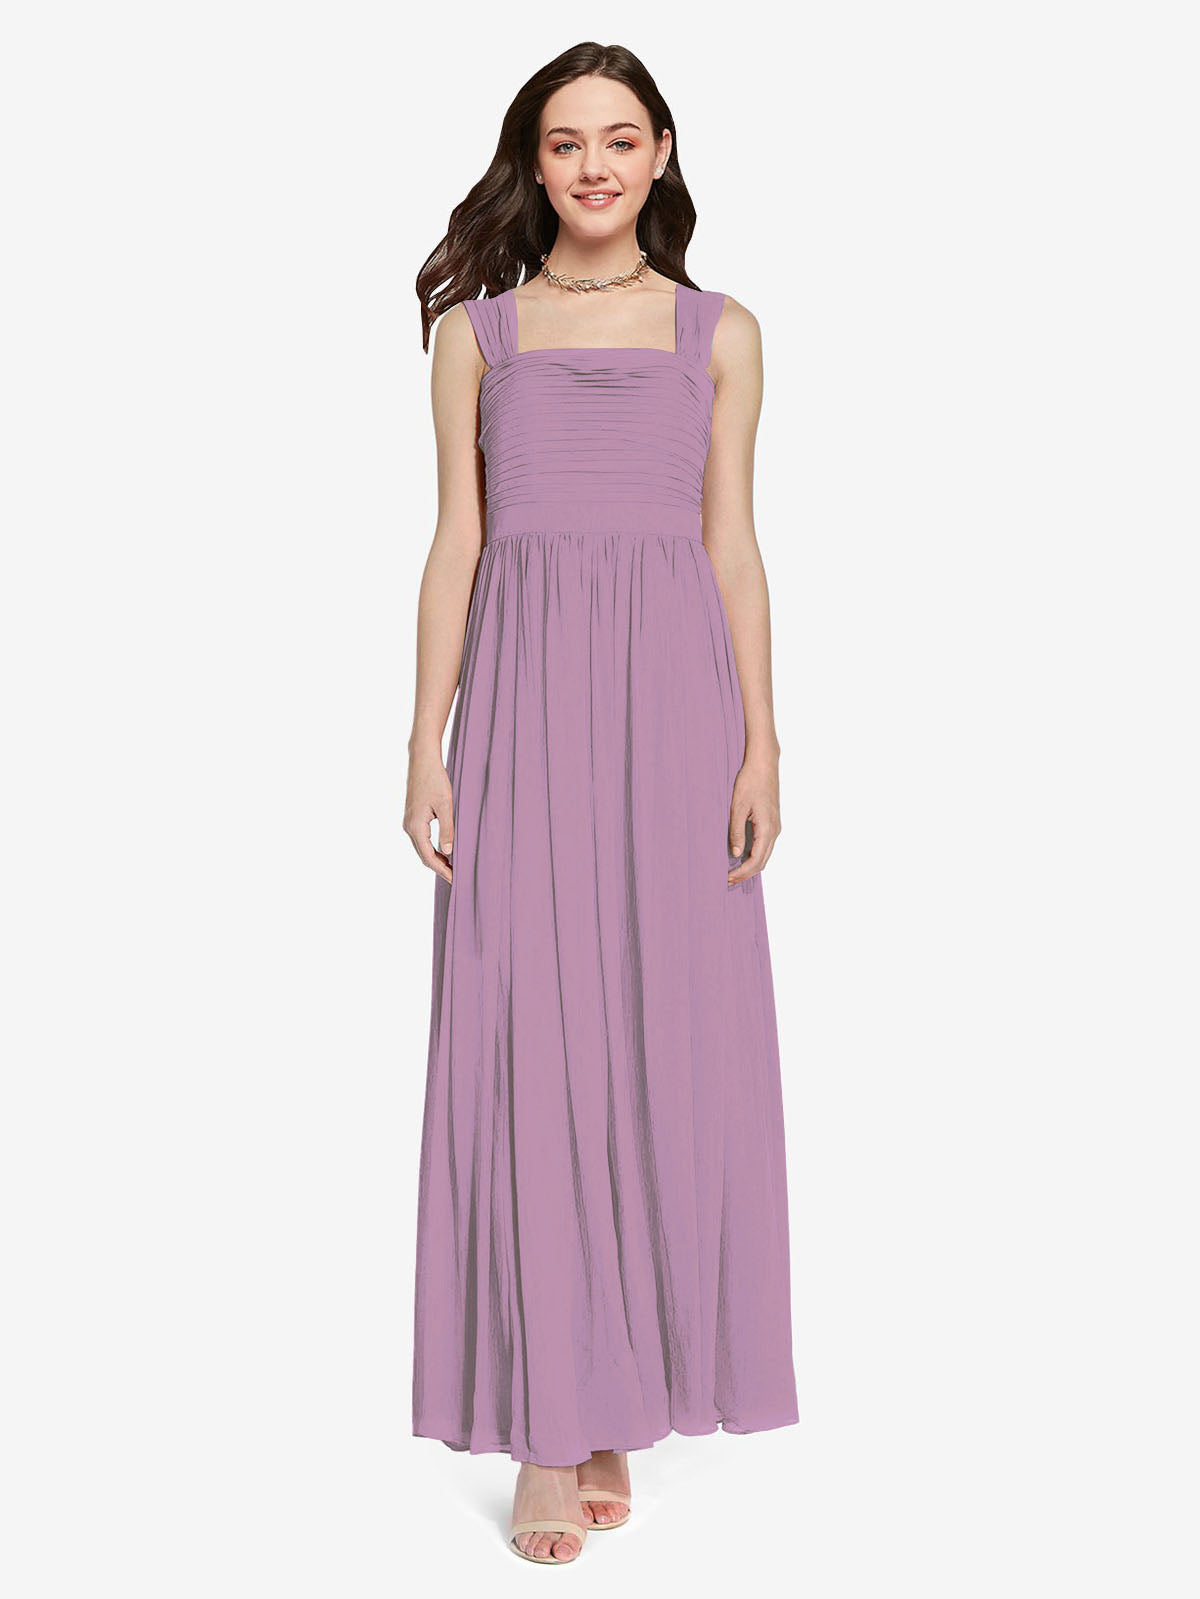 Long A-Line Square Sleeveless Dark Lavender Chiffon Bridesmaid Dress Aldridge